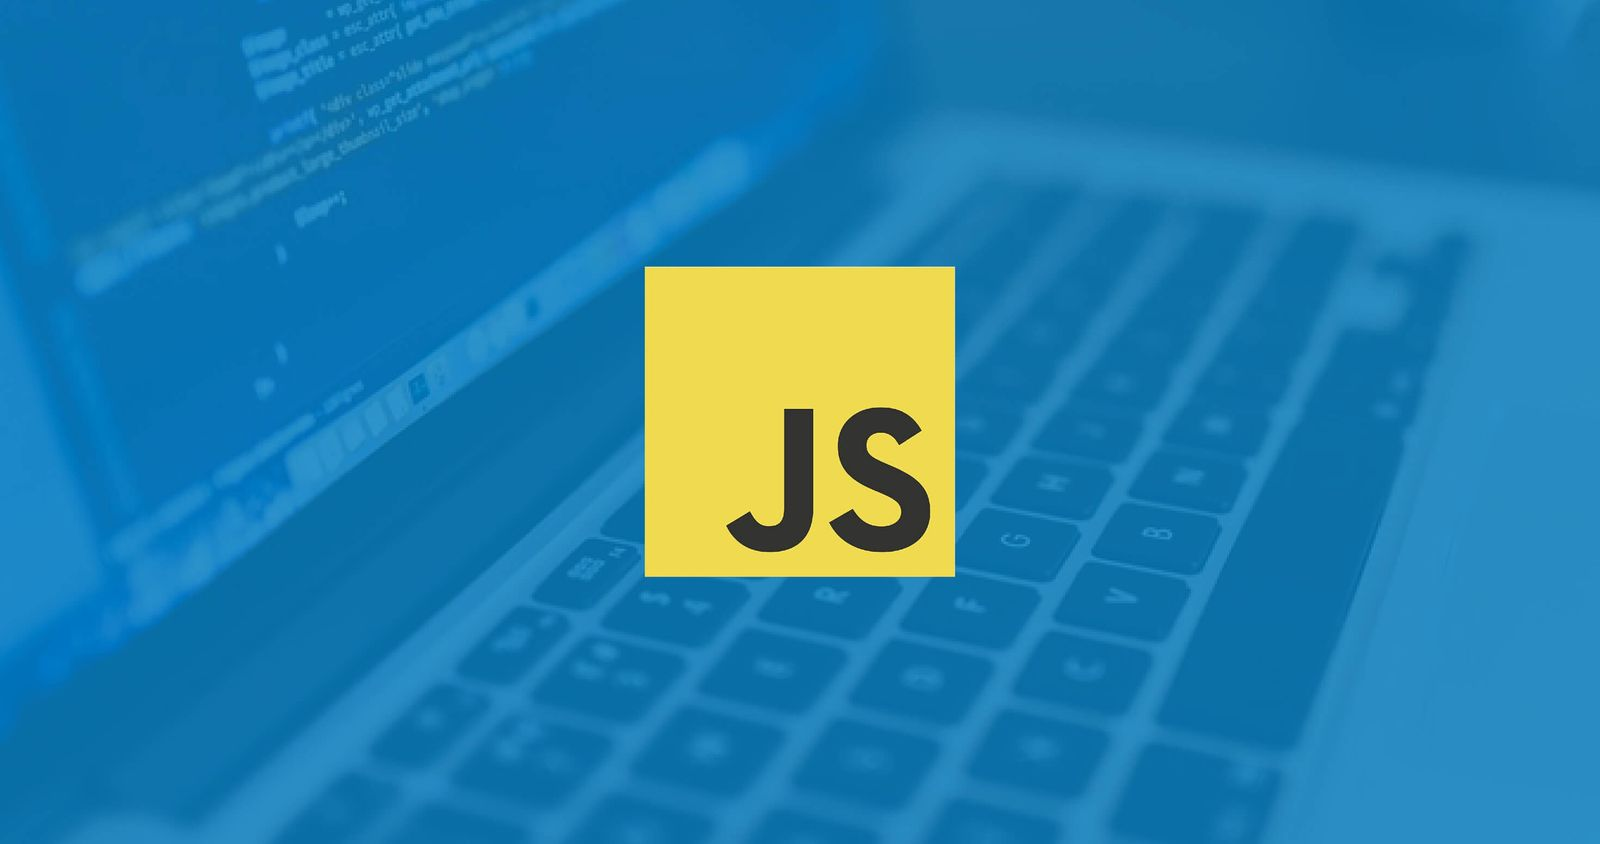 Taking functional programming to JavaScript objects